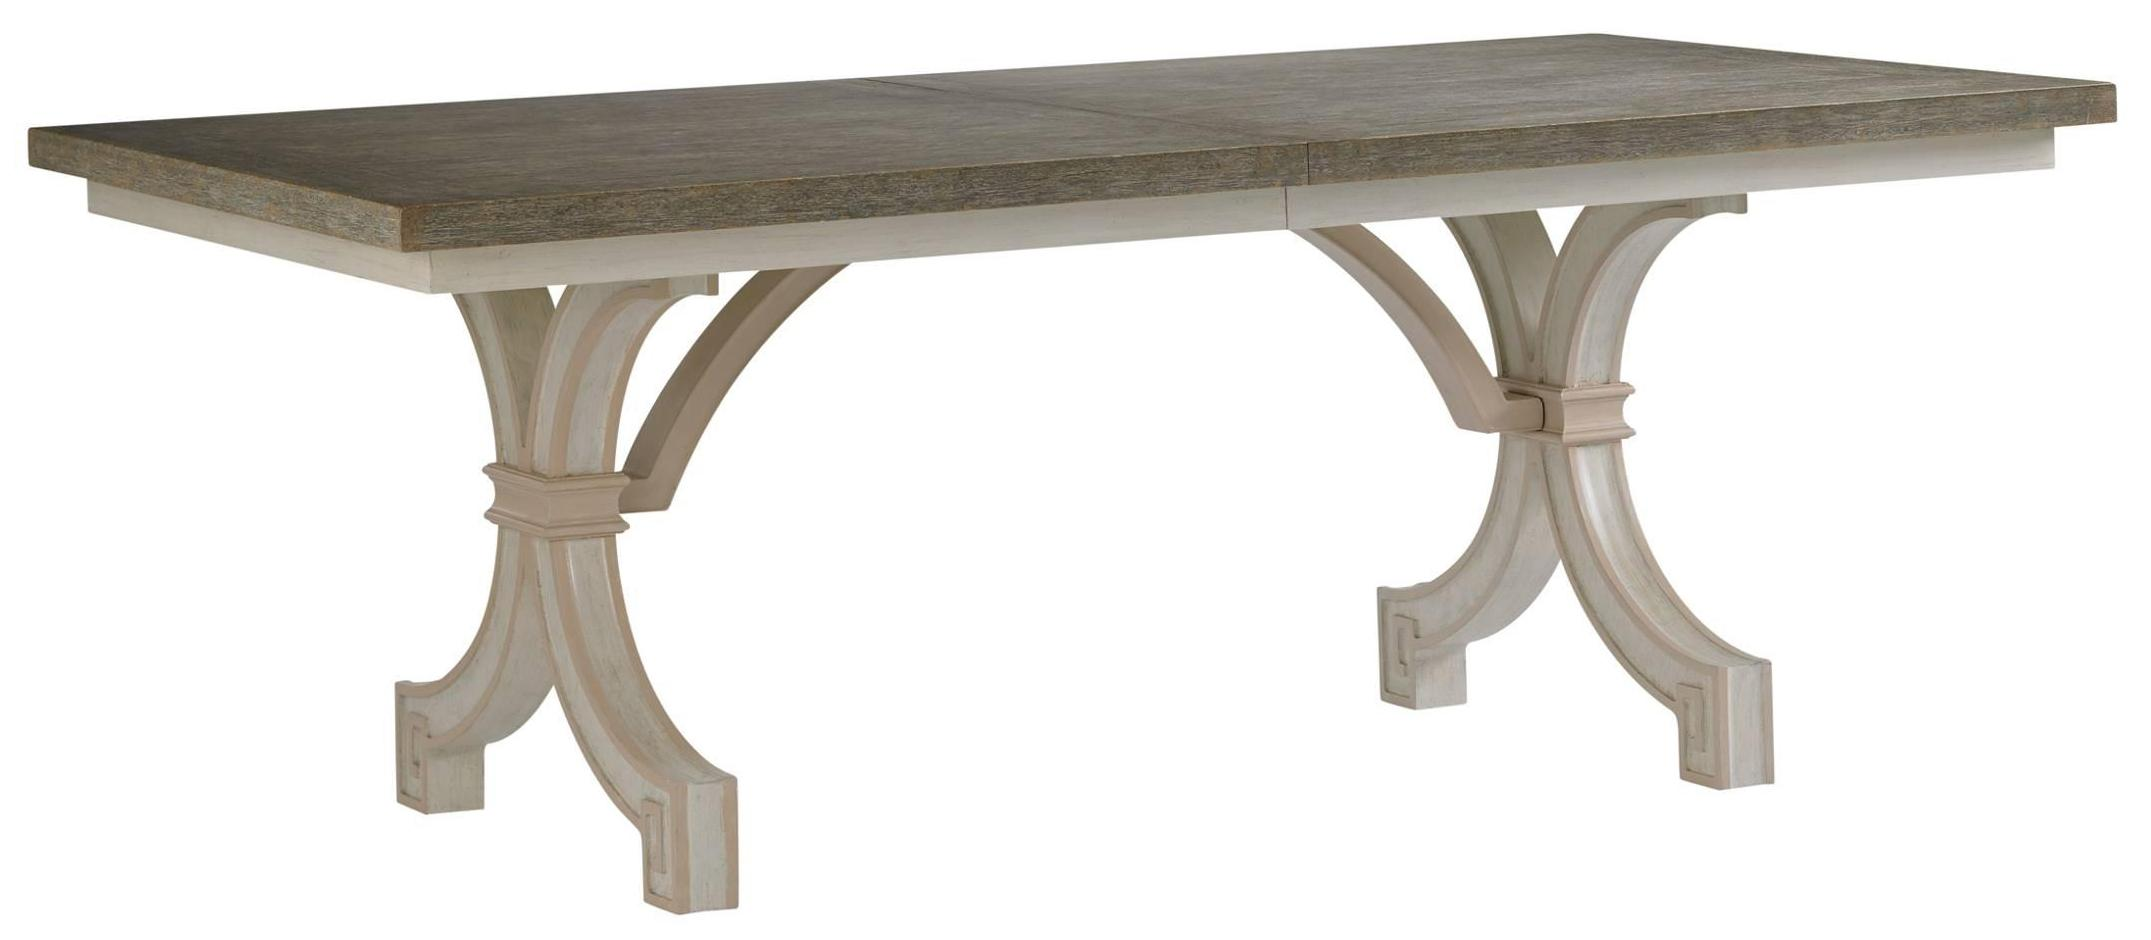 Stanley Furniture Preserve St. Helena Trestle Table - Item Number: 340-21-36